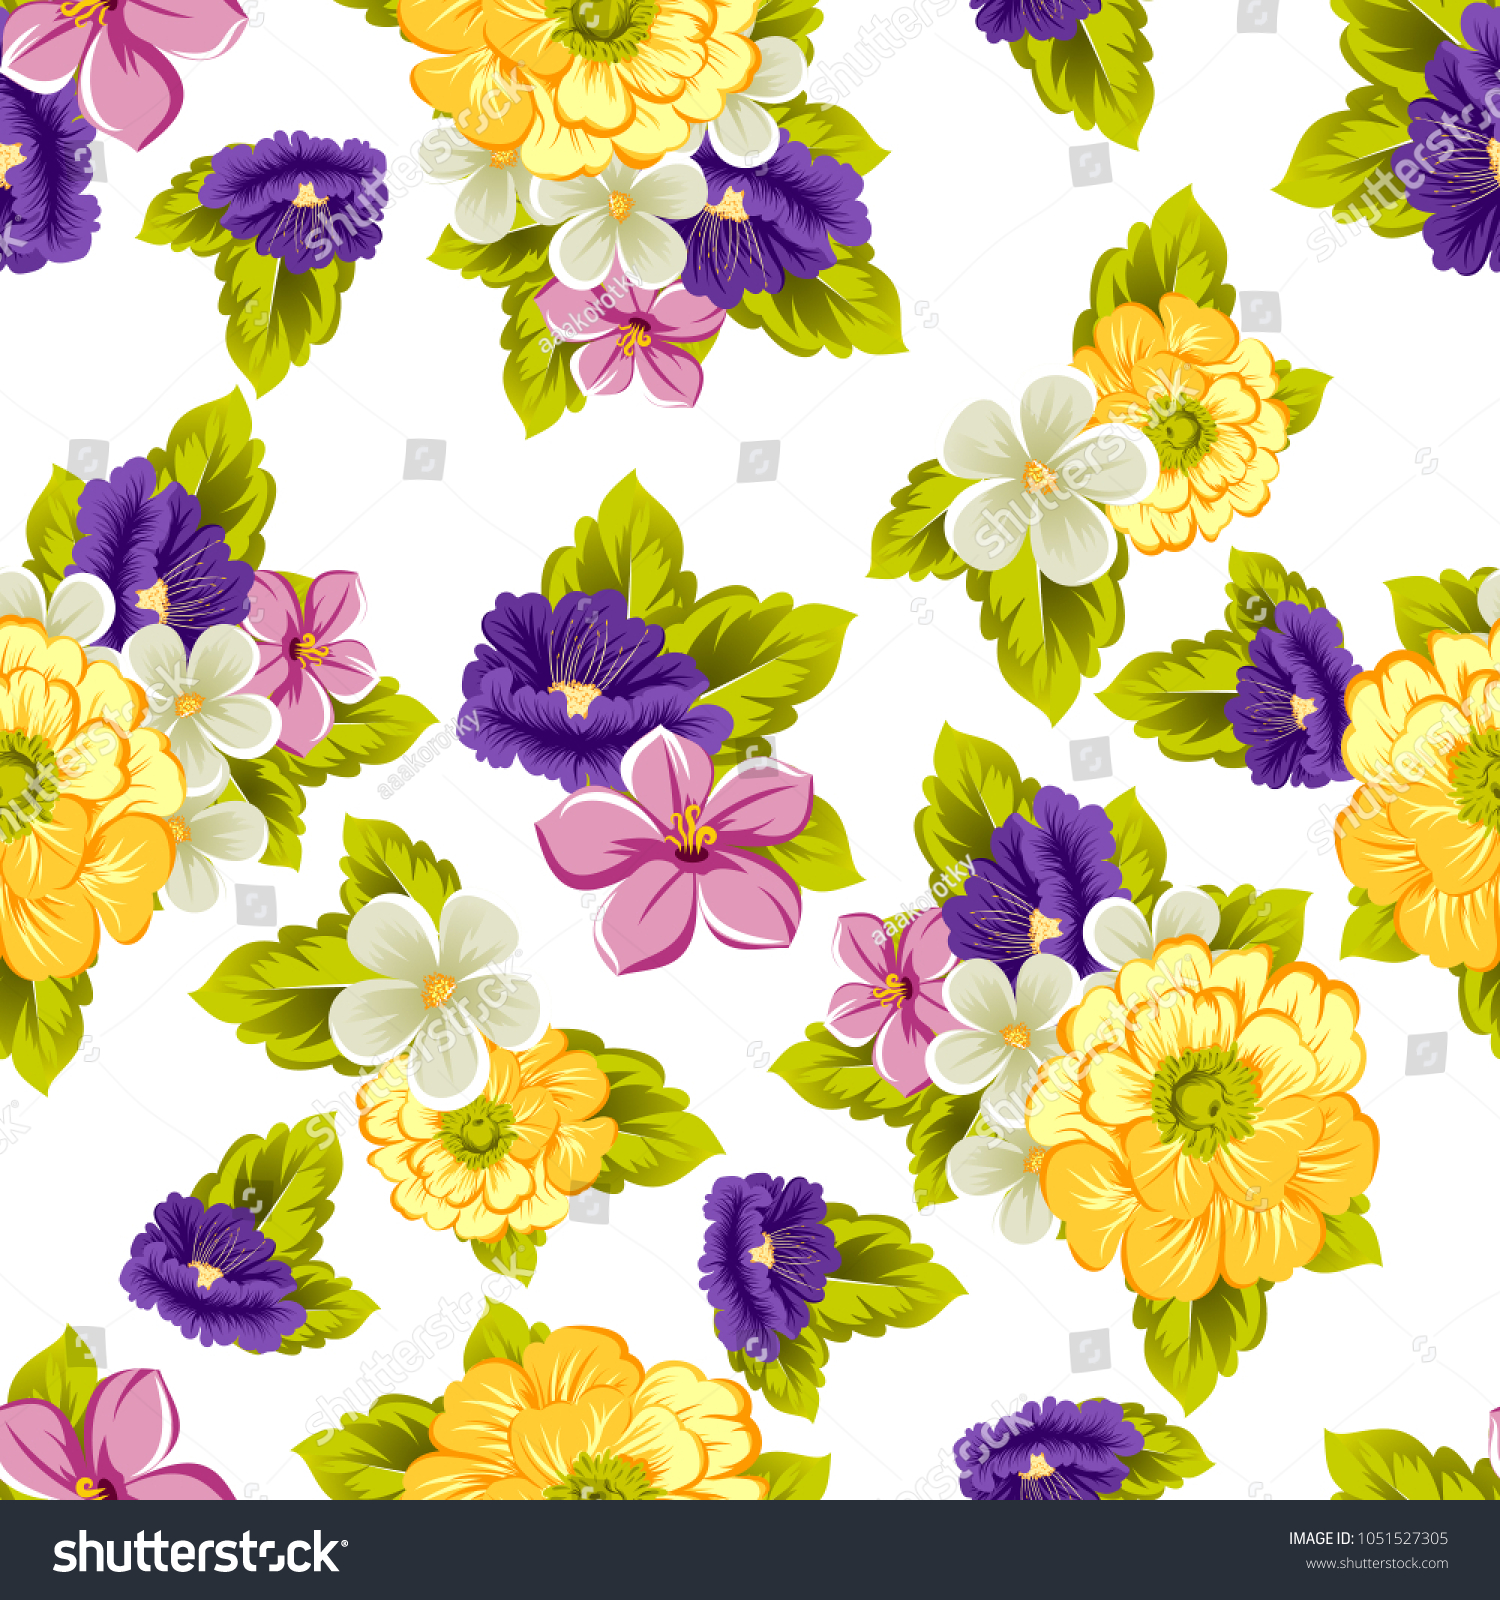 Beautiful elegant seamless pattern flowers your stock vector beautiful elegant seamless pattern of flowers for your fabrics design postcards greeting cards izmirmasajfo